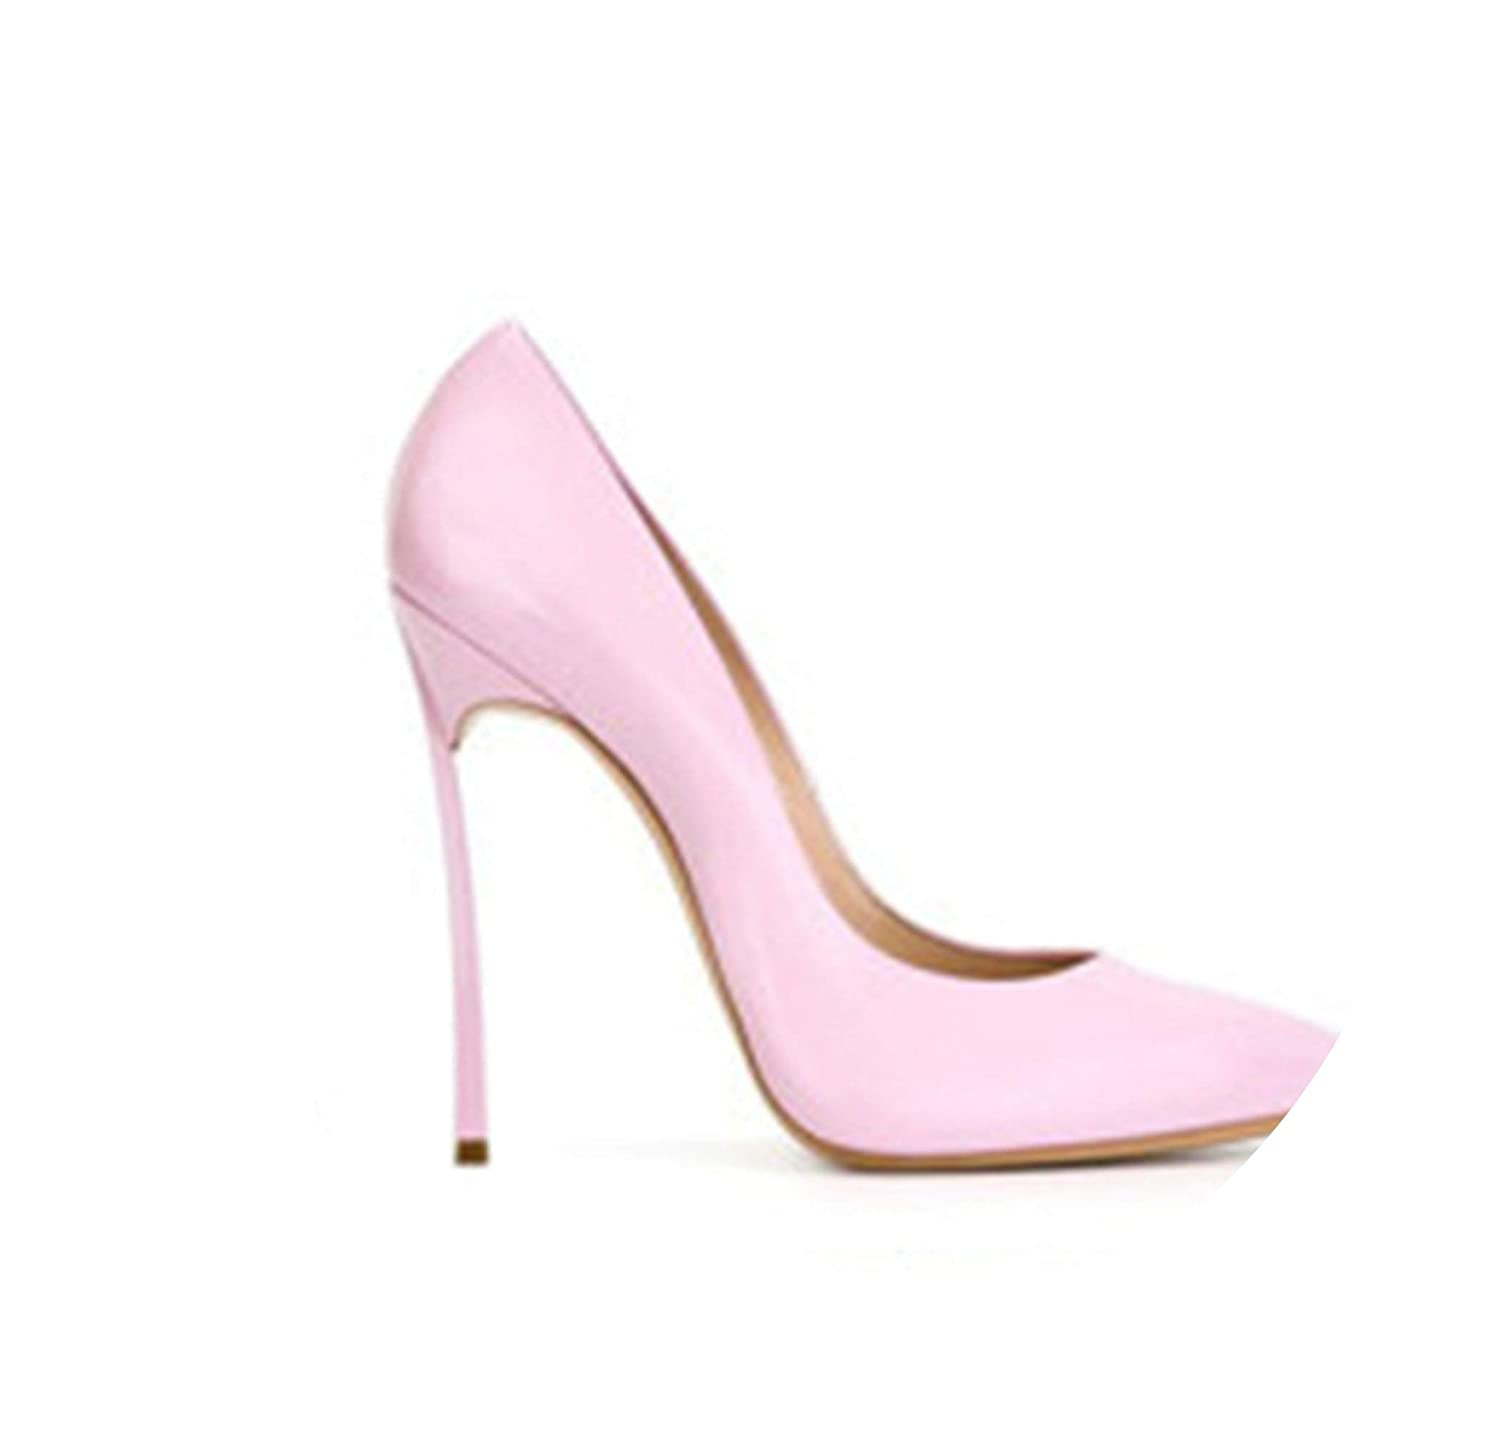 Patent light pink RAINIE002 Brand shoes Woman High Heels Women Pumps Stiletto Thin Heel Women's shoes Nude Pointed Toe High Heels Wedding shoes Size 33-43